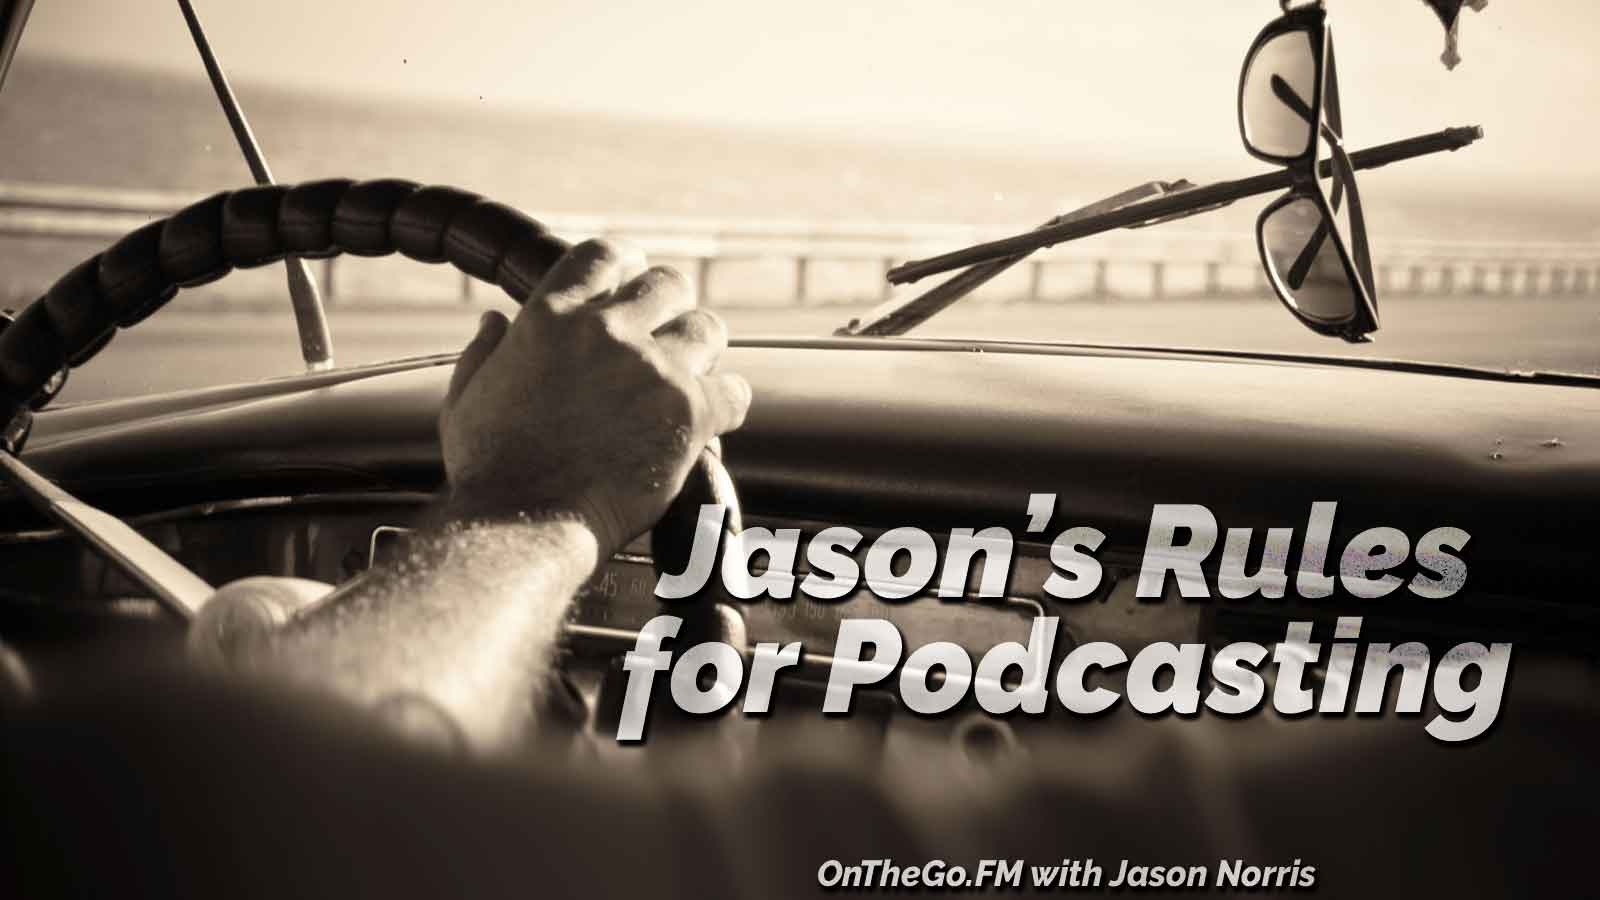 Jason's Rules for Podcasting. OnTheGo.FM with Jason E. Norris